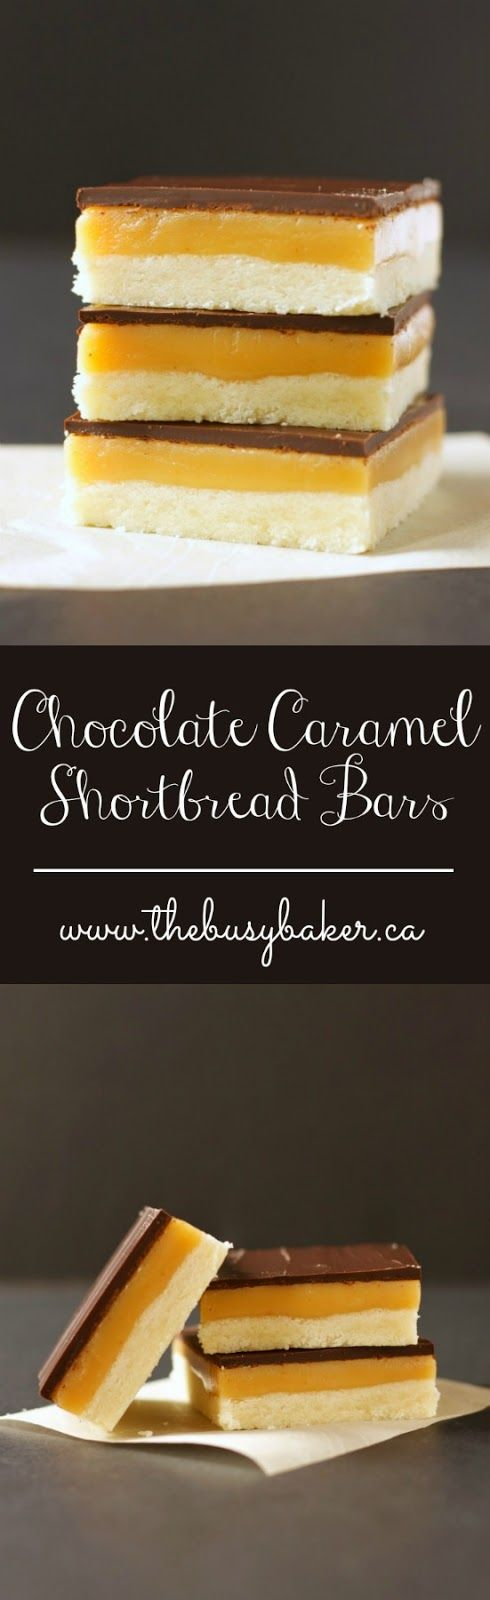 These Chocolate Caramel Shortbread Bars from thebusybaker.ca are the perfect St. Patrick's Day treat!